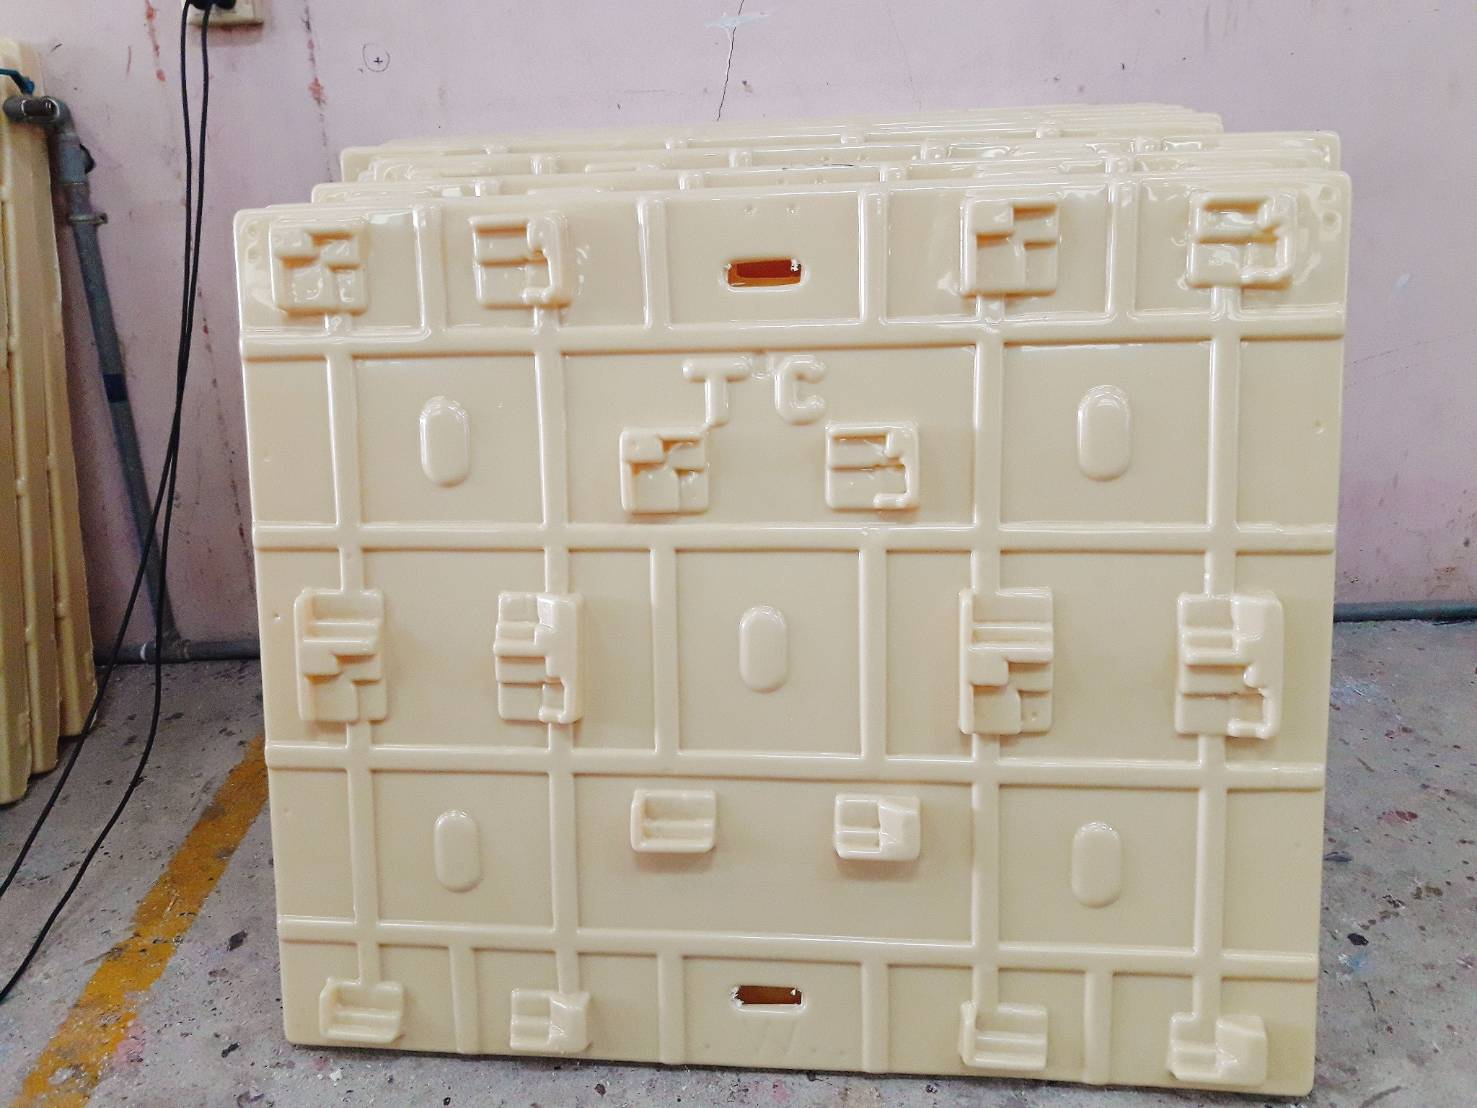 Plate Support Block